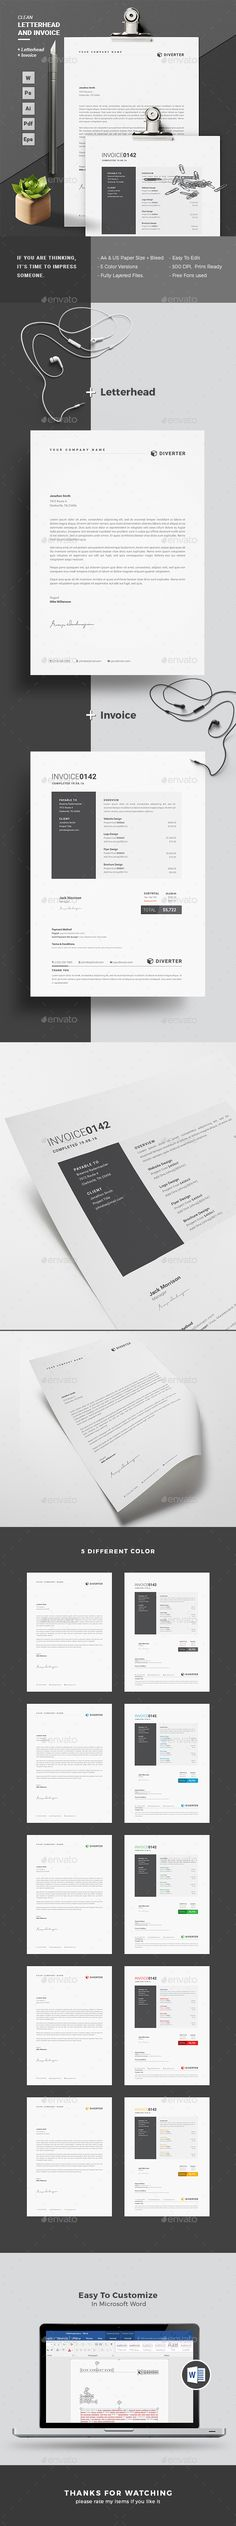 Letterhead Template PSD, Vector EPS, AI, MS Word Letterhead - letterhead samples word